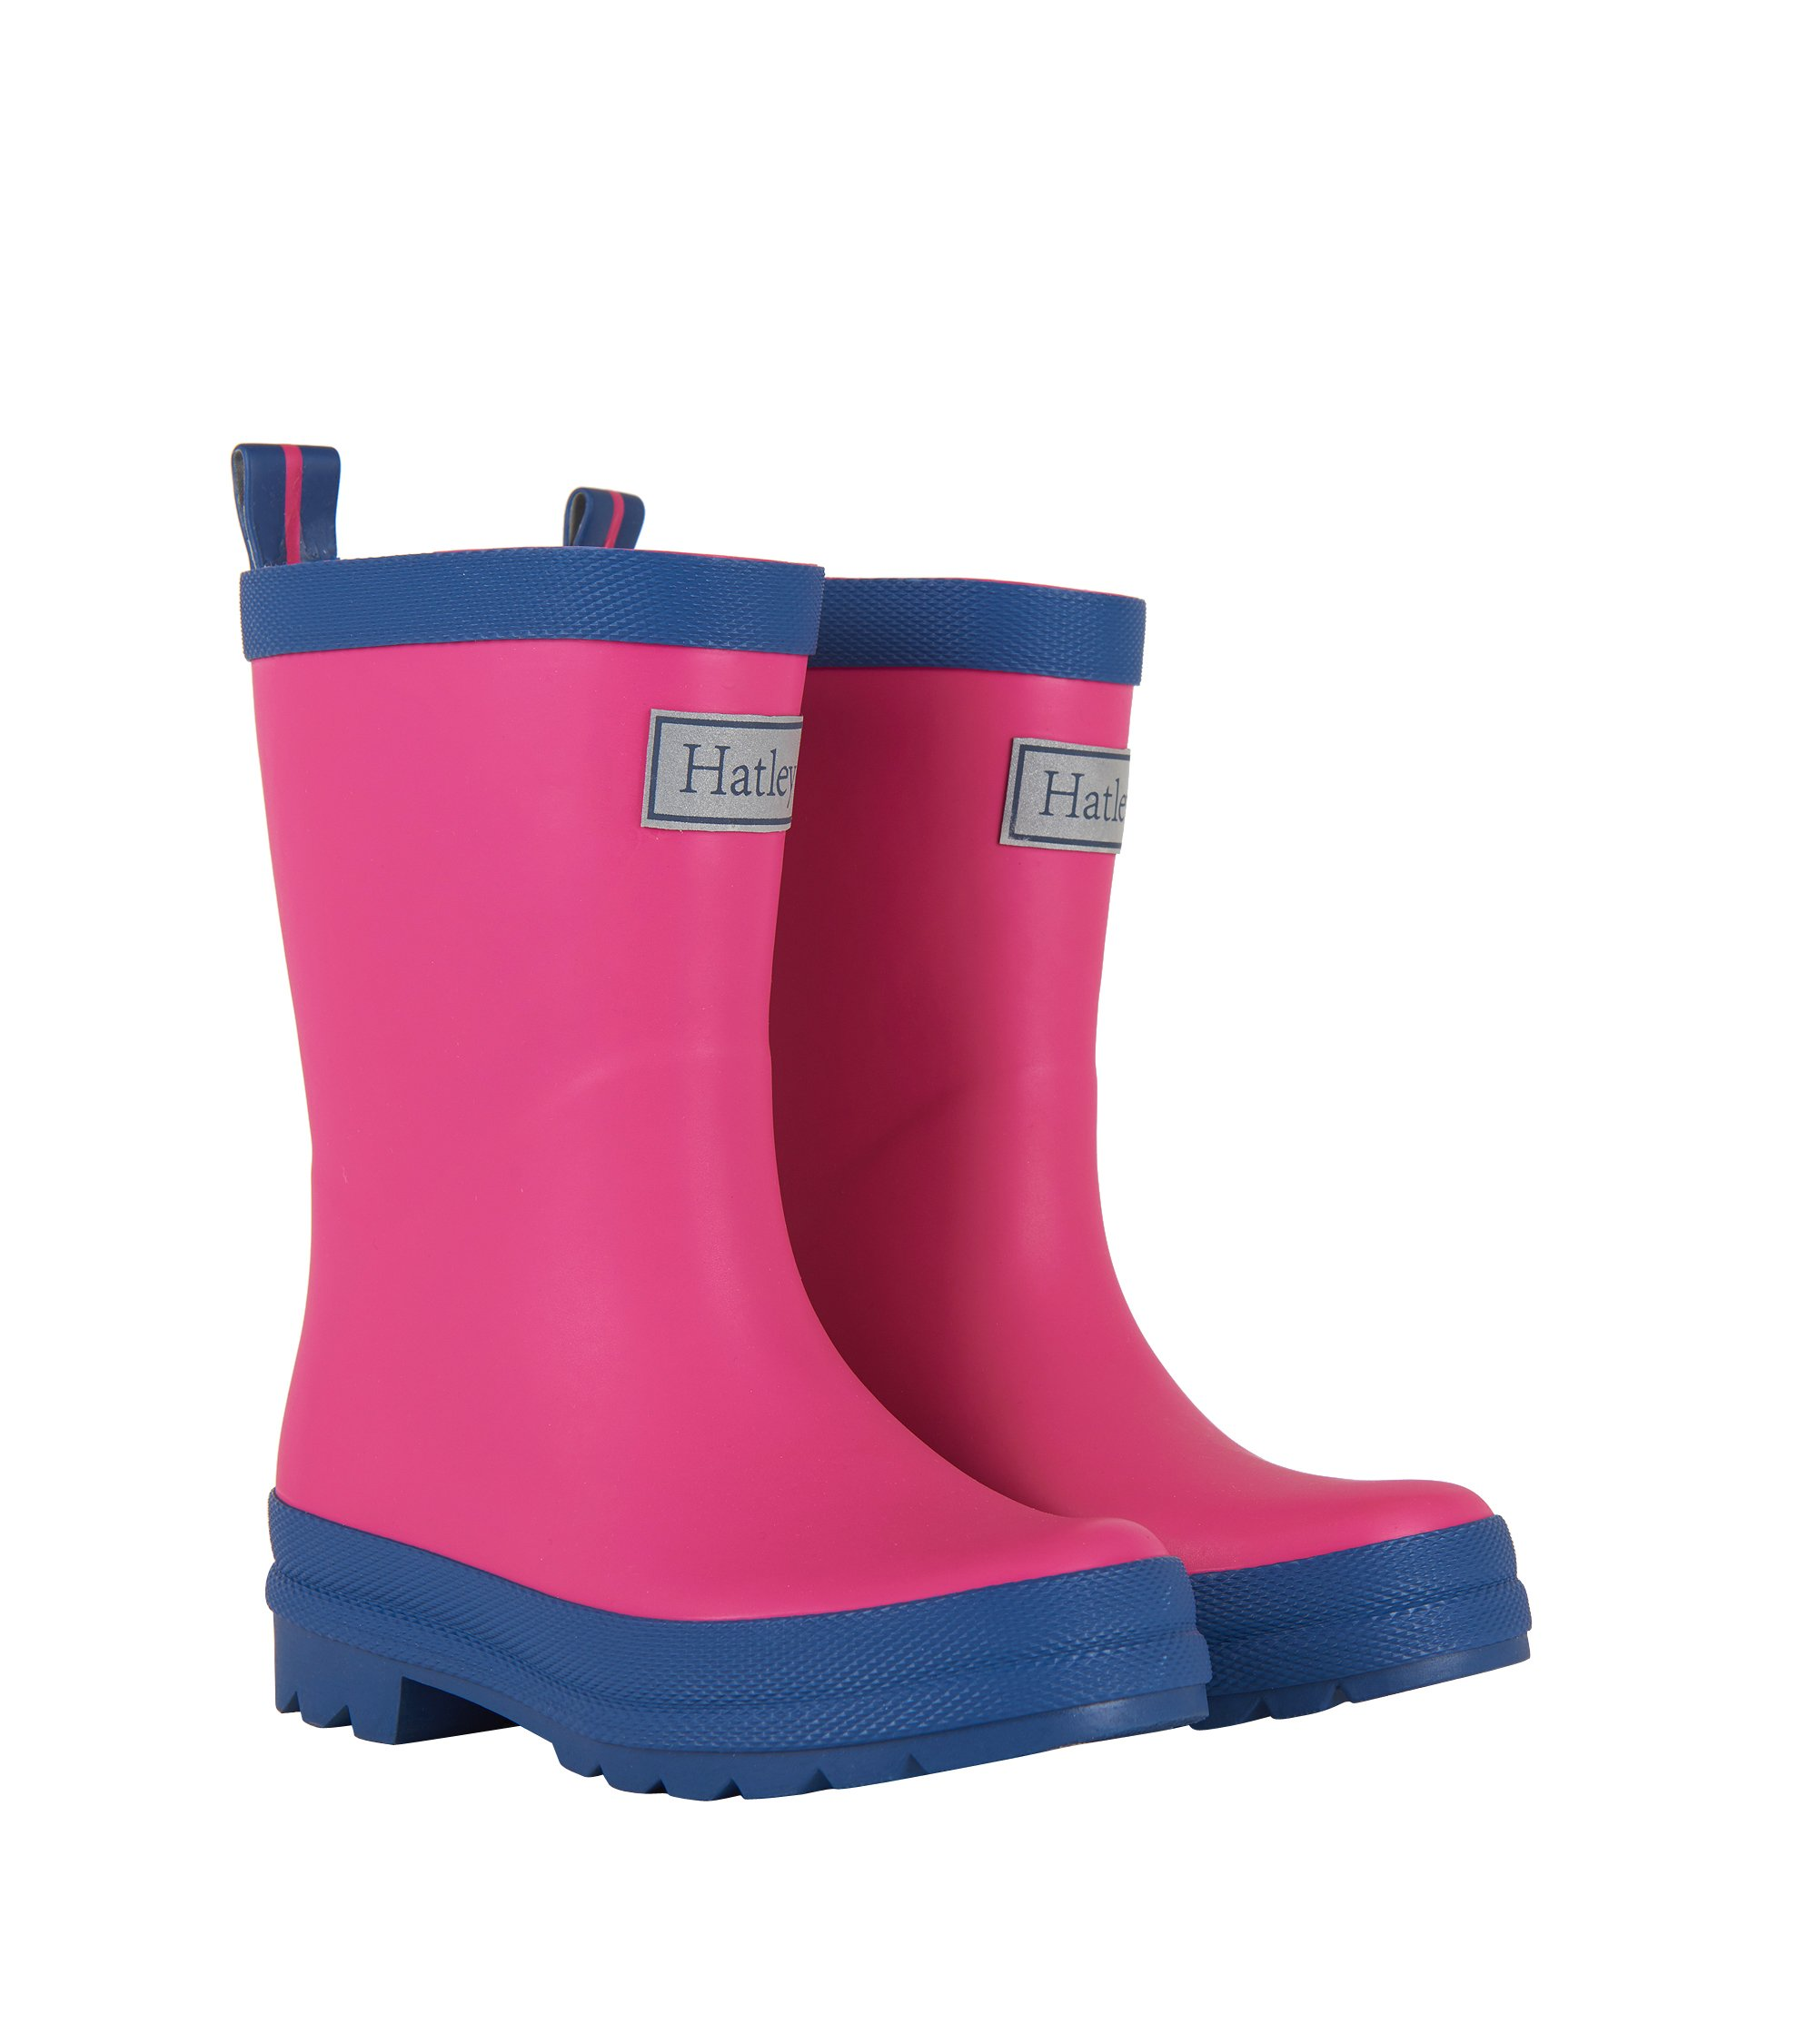 Hatley Kids' Classic Boots Girls Rain Accessory, Fuchsia Navy, 7 M US Toddler by Hatley (Image #1)